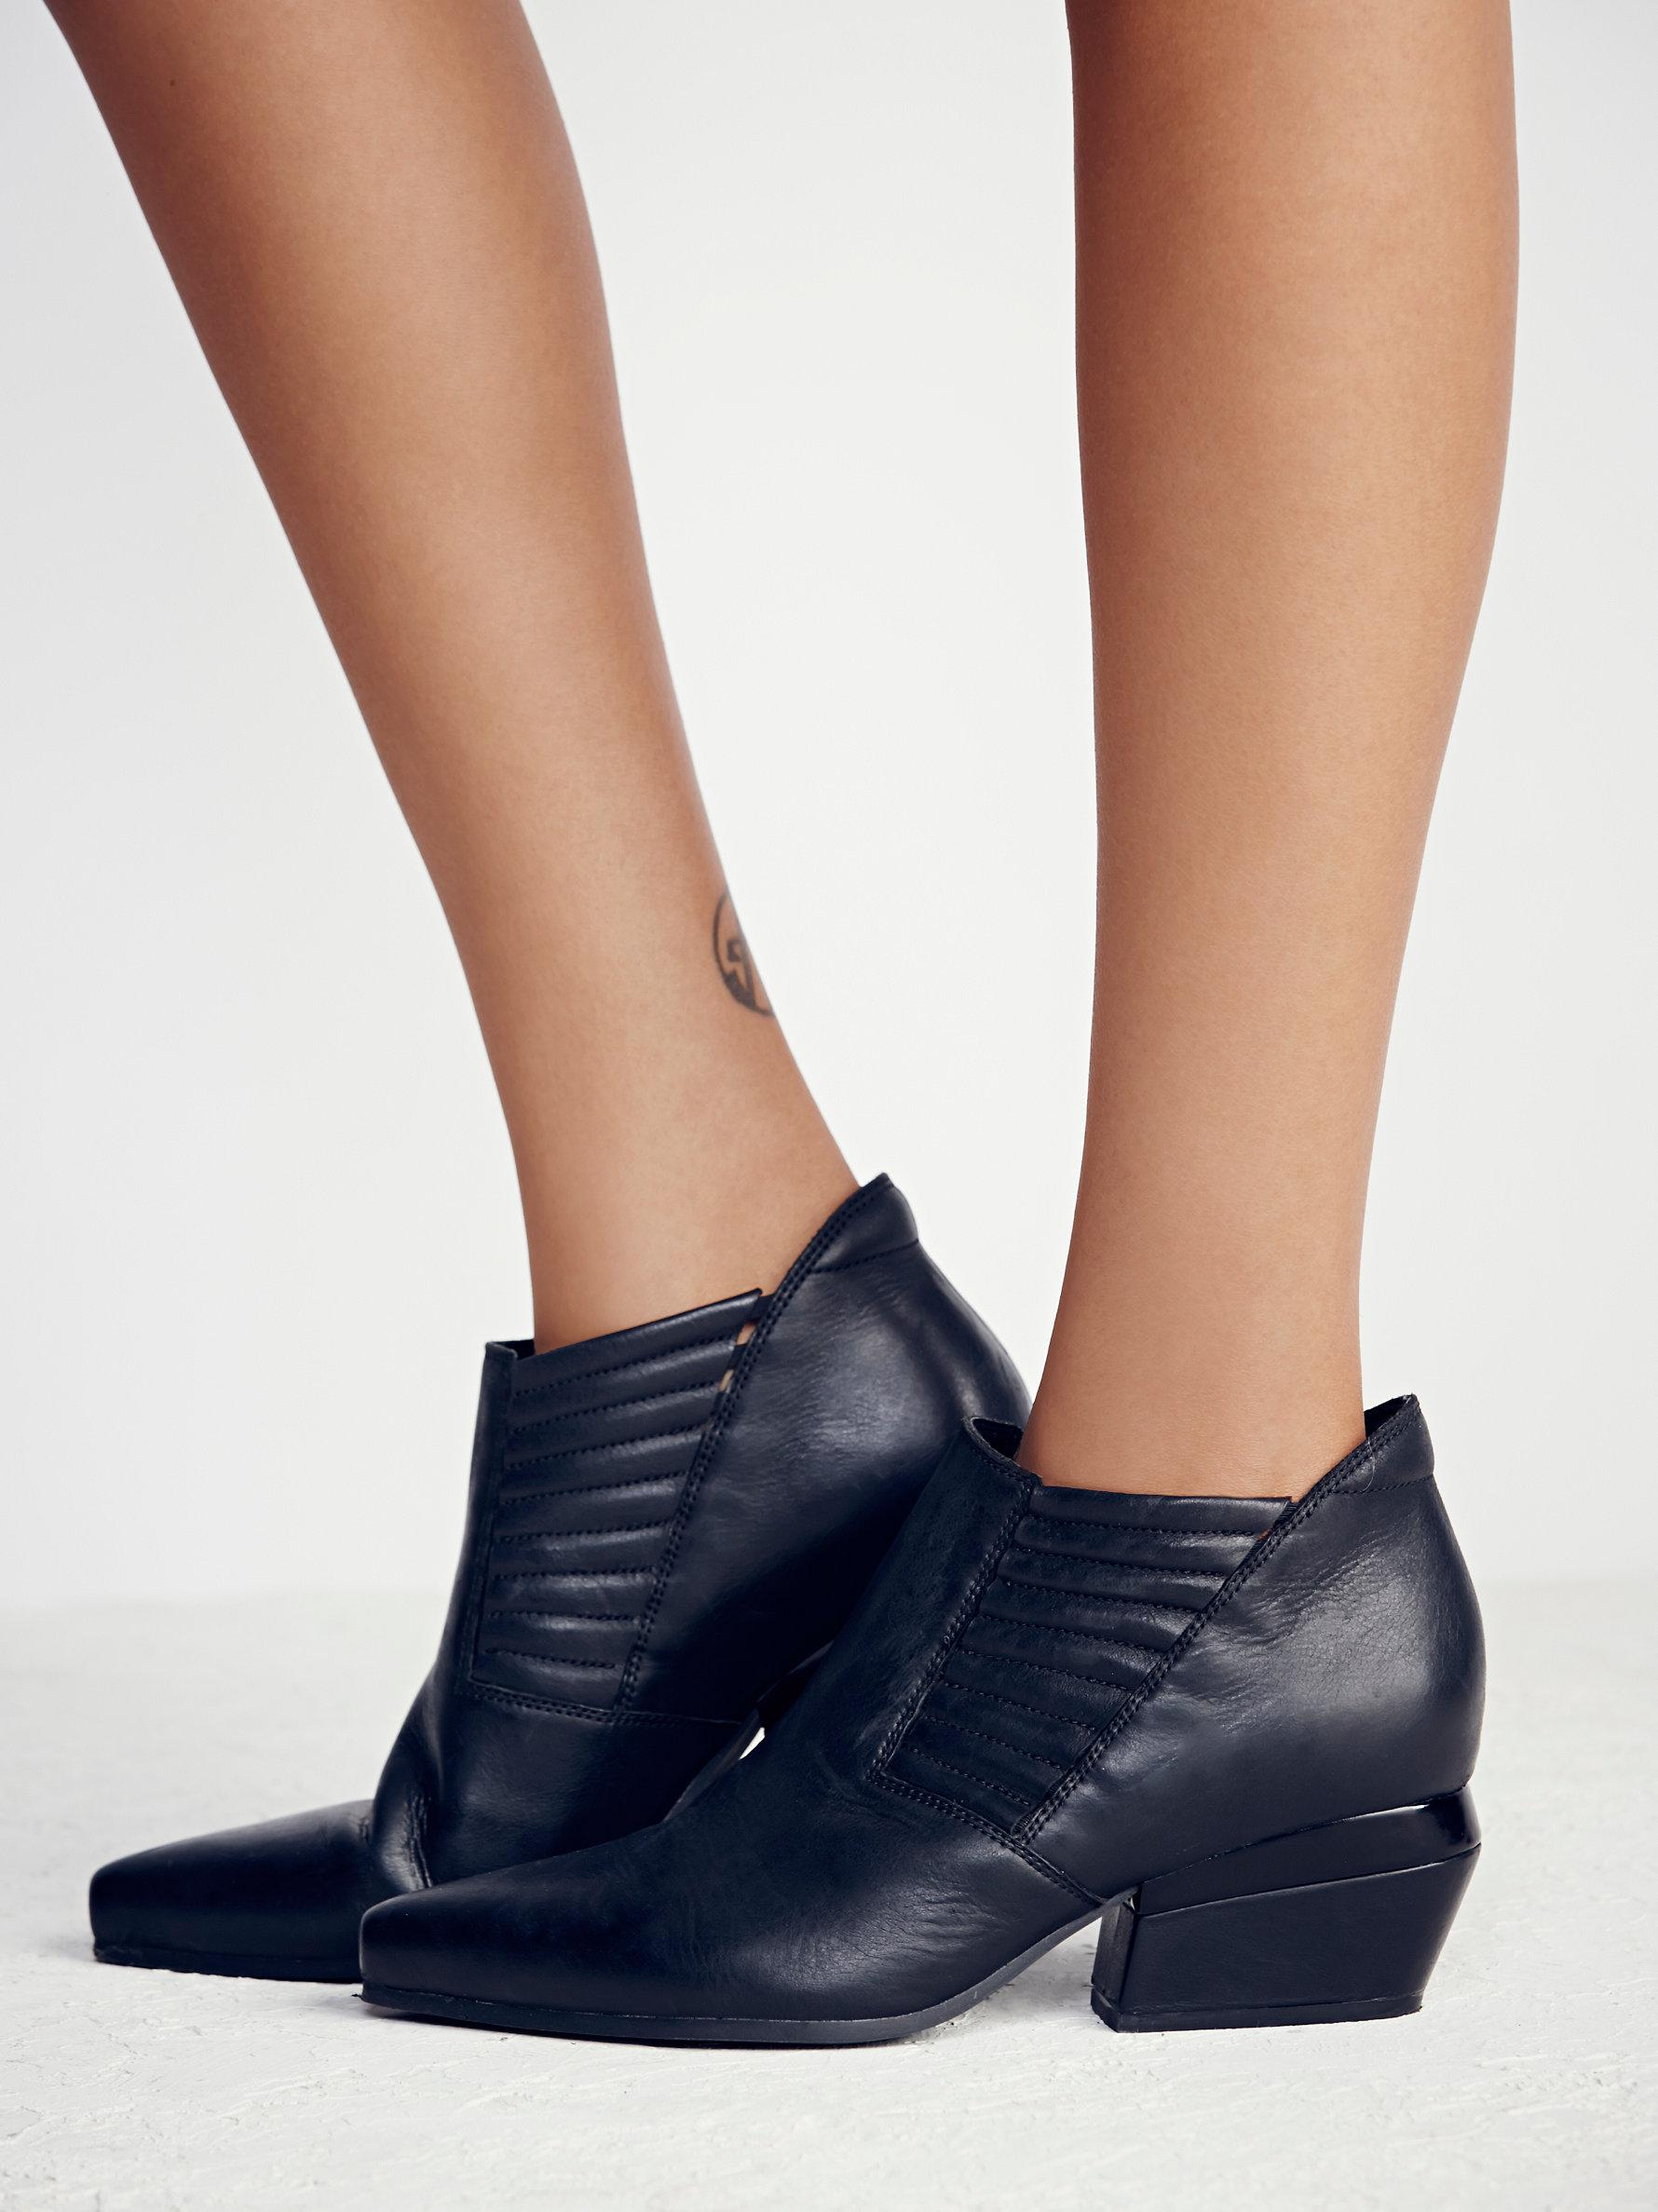 Free People Leather Outerbanks Ankle Boot in Black